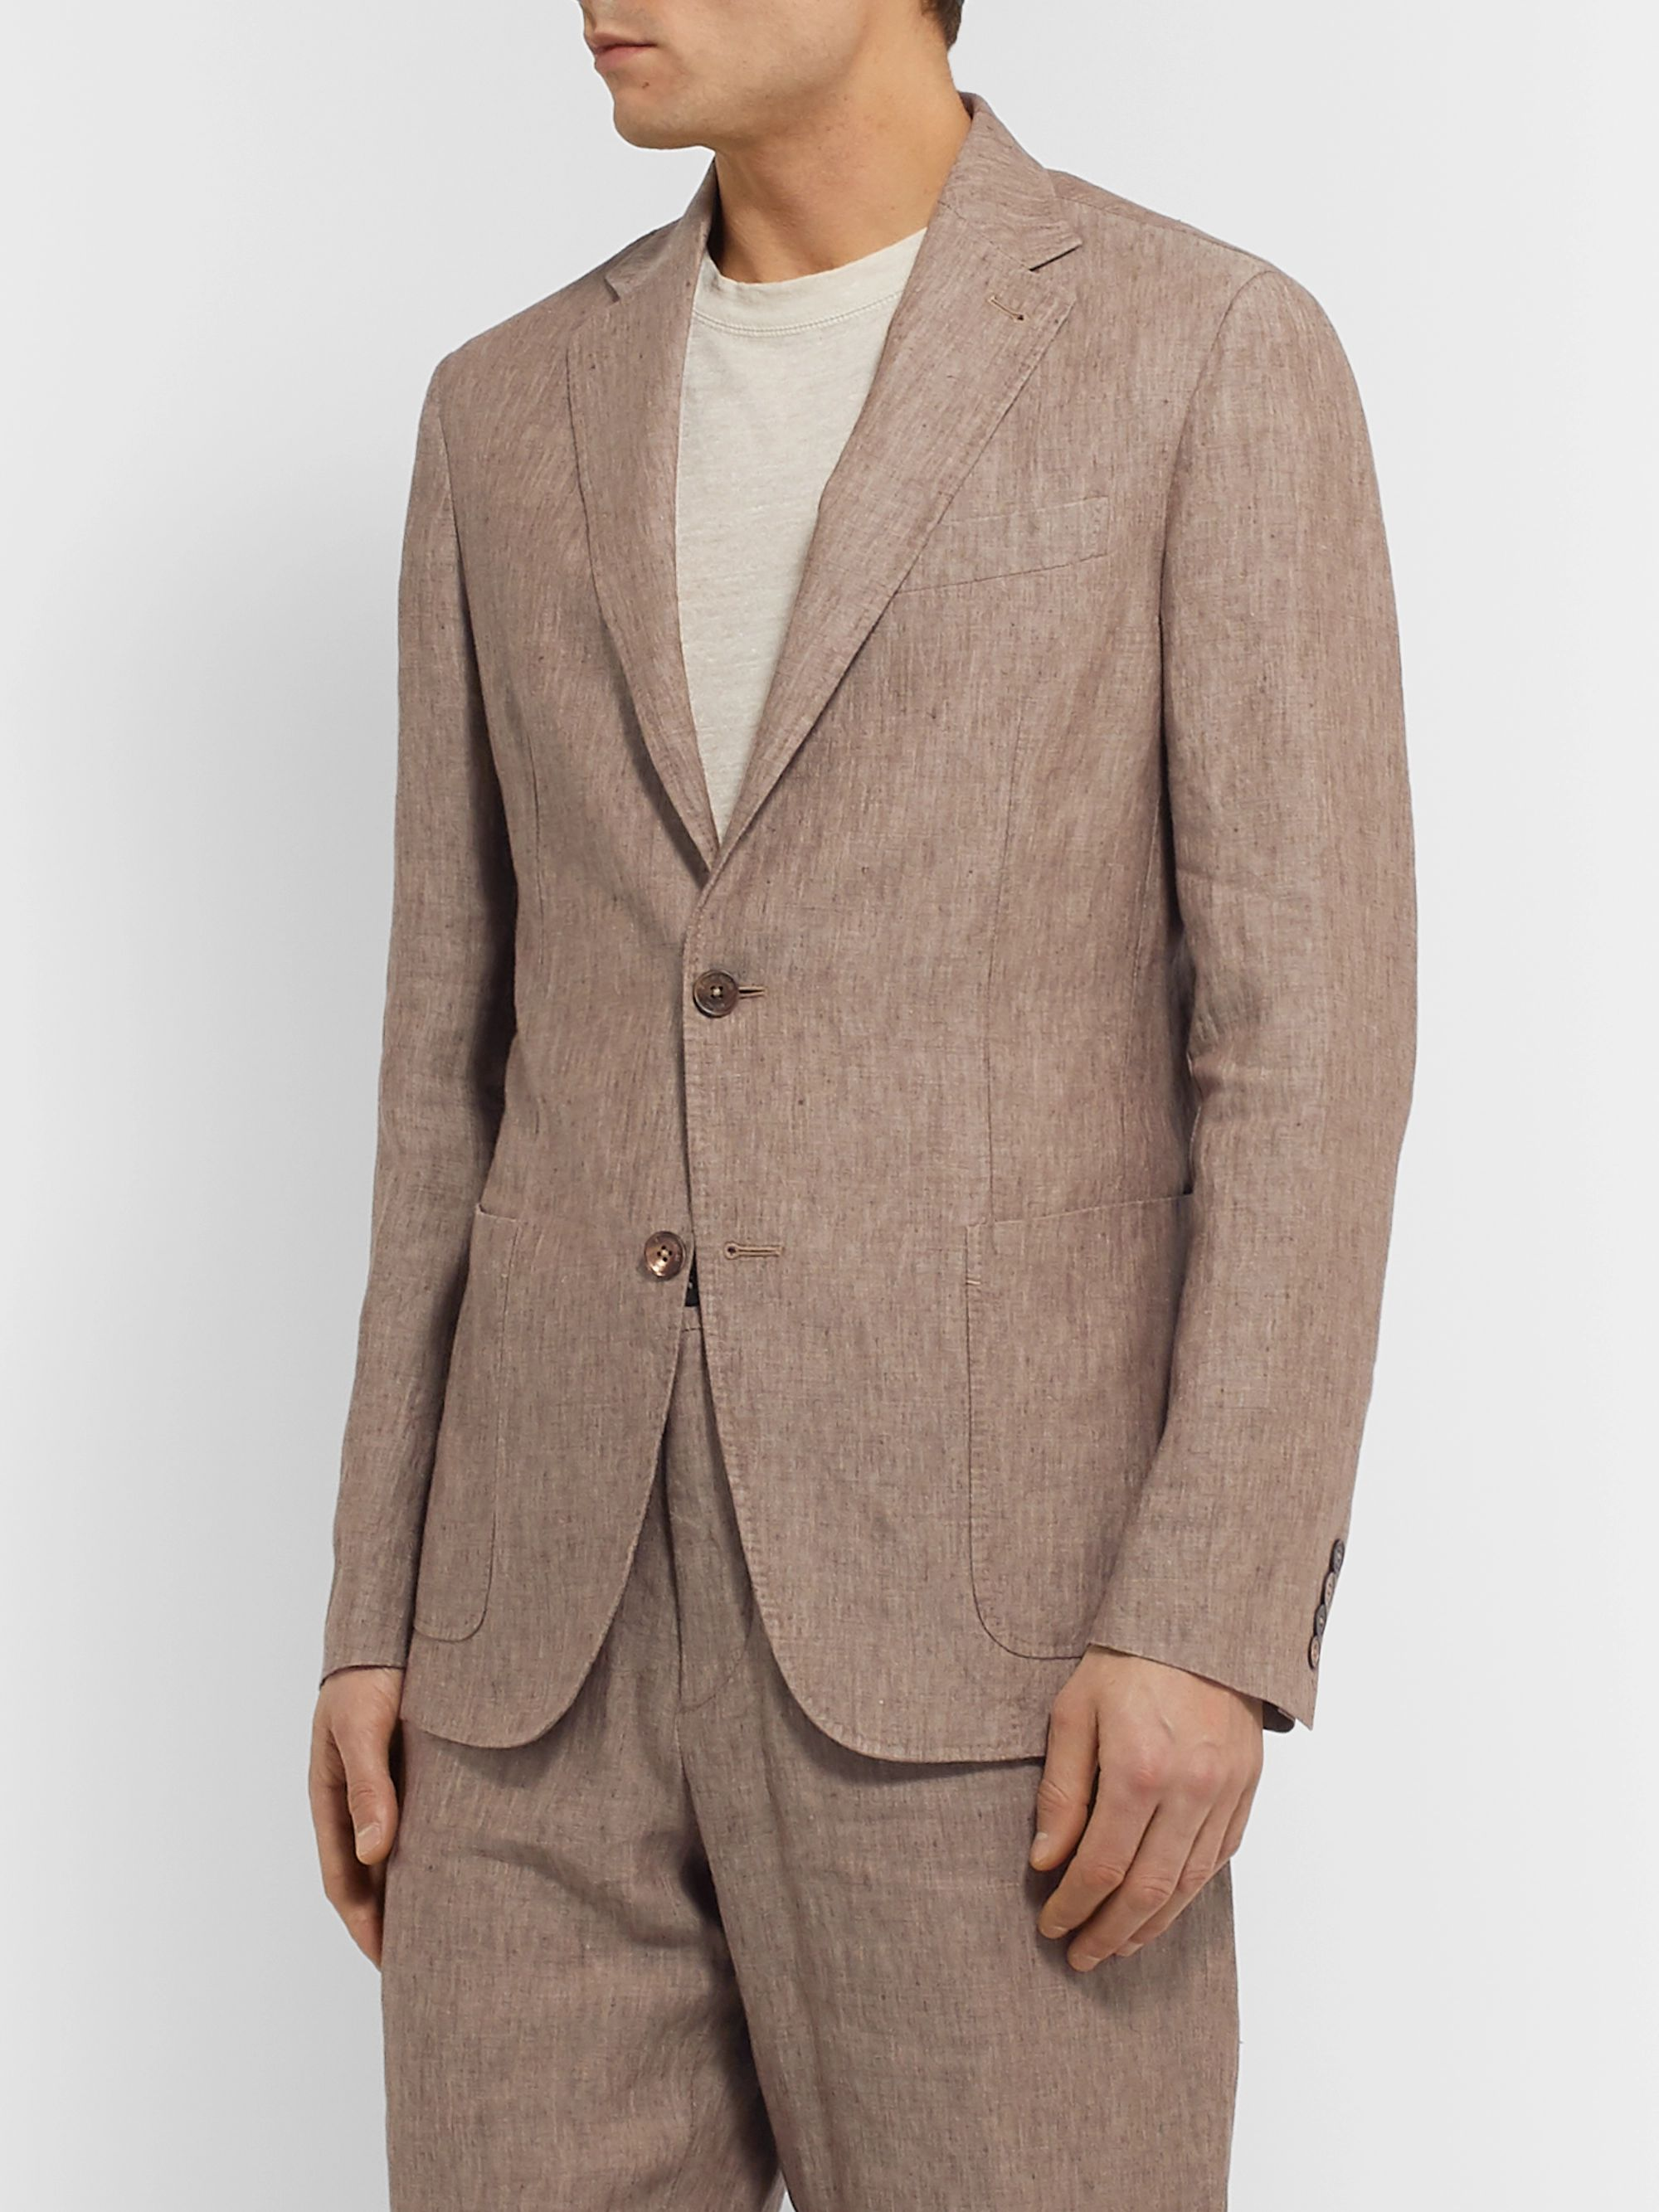 ERMENEGILDO ZEGNA Unstructured Linen Suit Jacket